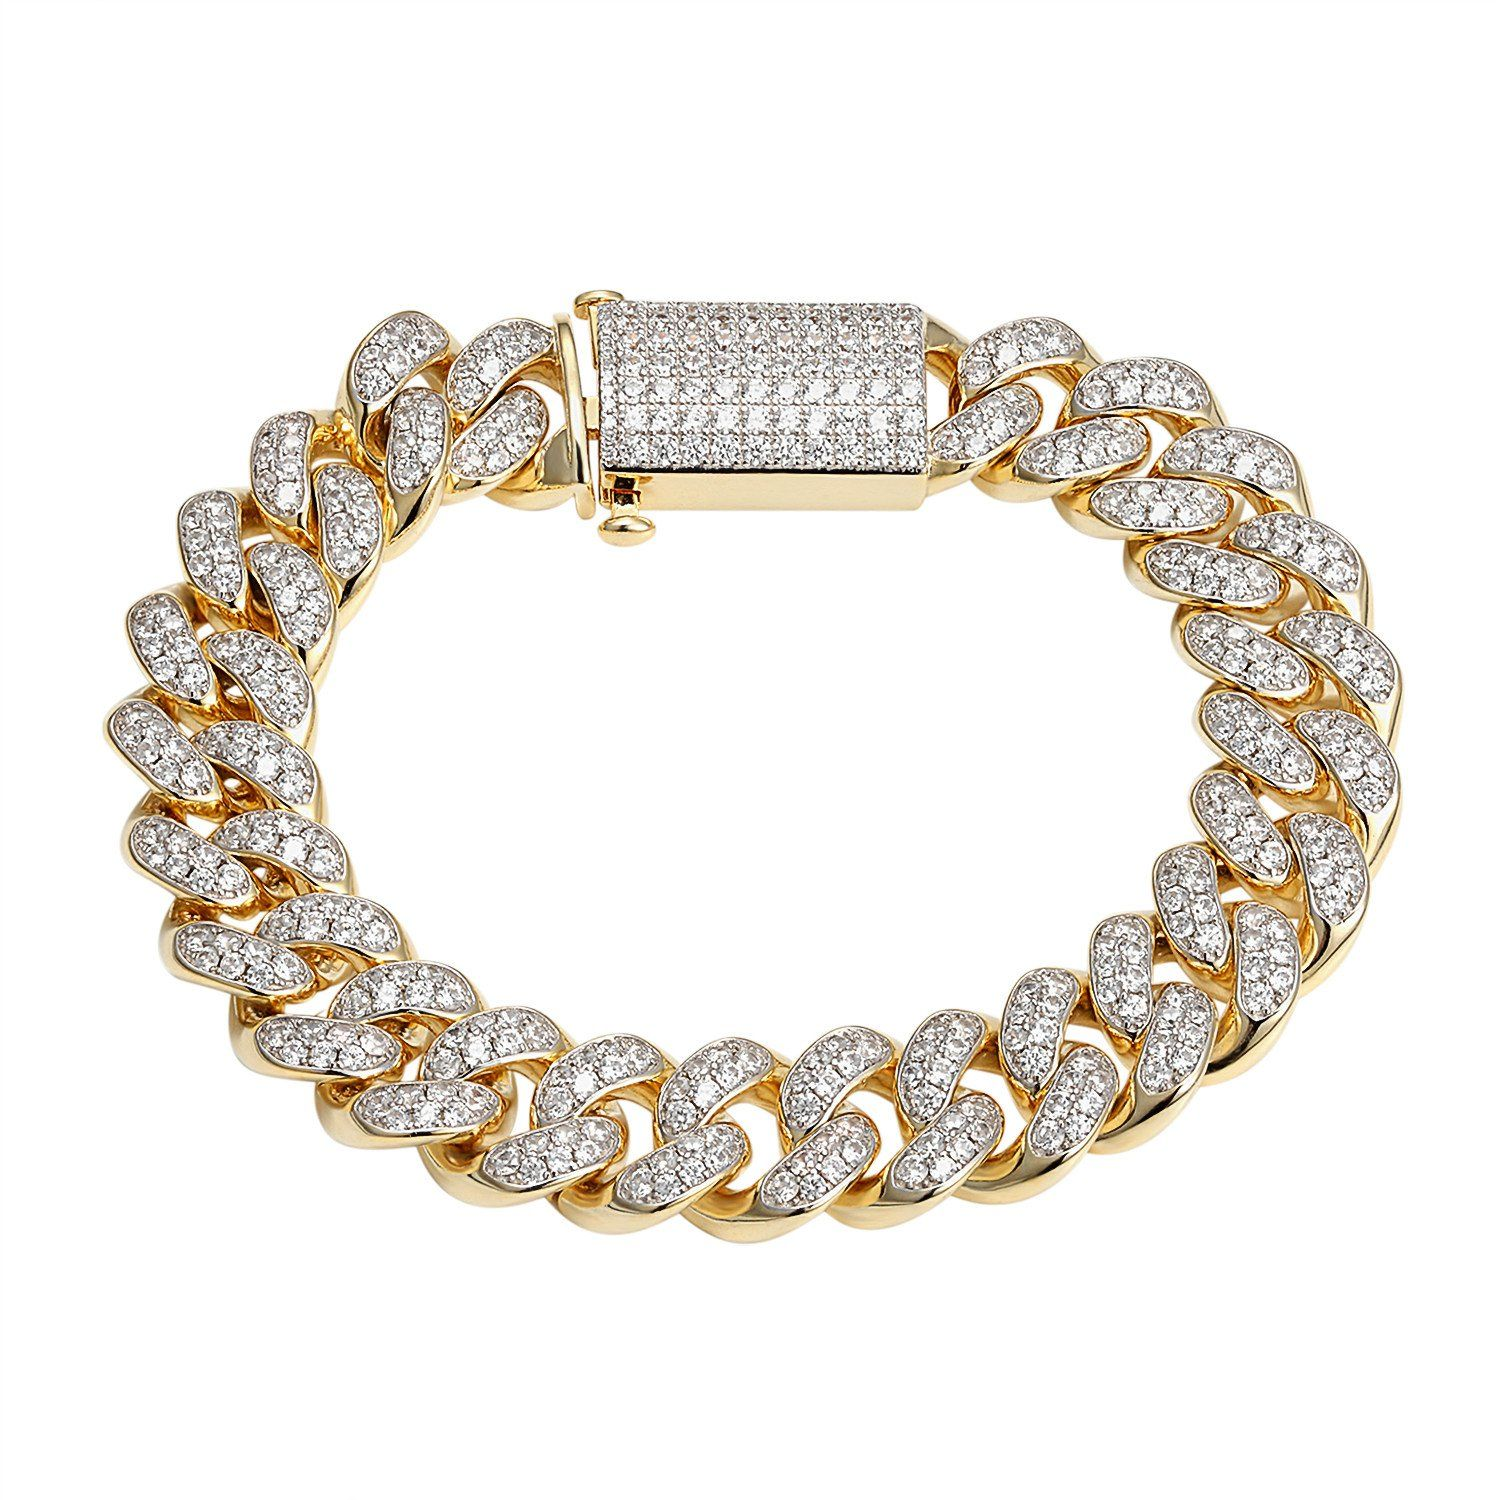 fd15b22d8ea Men's Vintage Designer Iced Cuban Link Bracelet With 14K Yellow Gold Finish  Over Solid Sterling Silver Flooded With White Simulated Lab Diamonds Stock:  ...